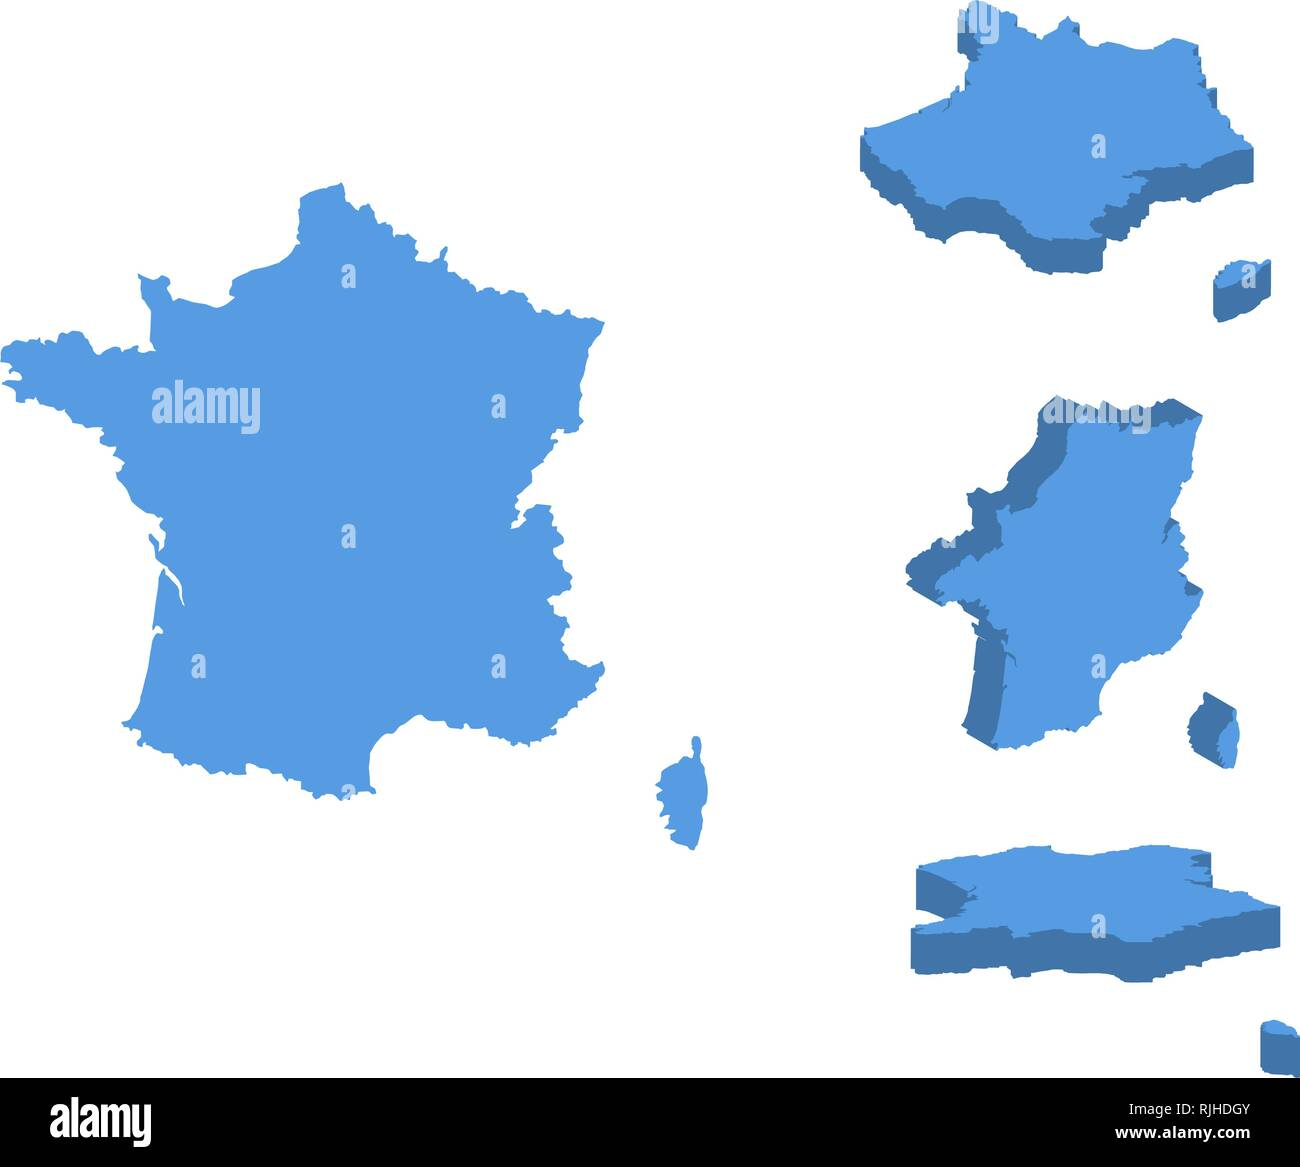 Capital Of France Map.France Political Map Capital Paris Stock Photos France Political